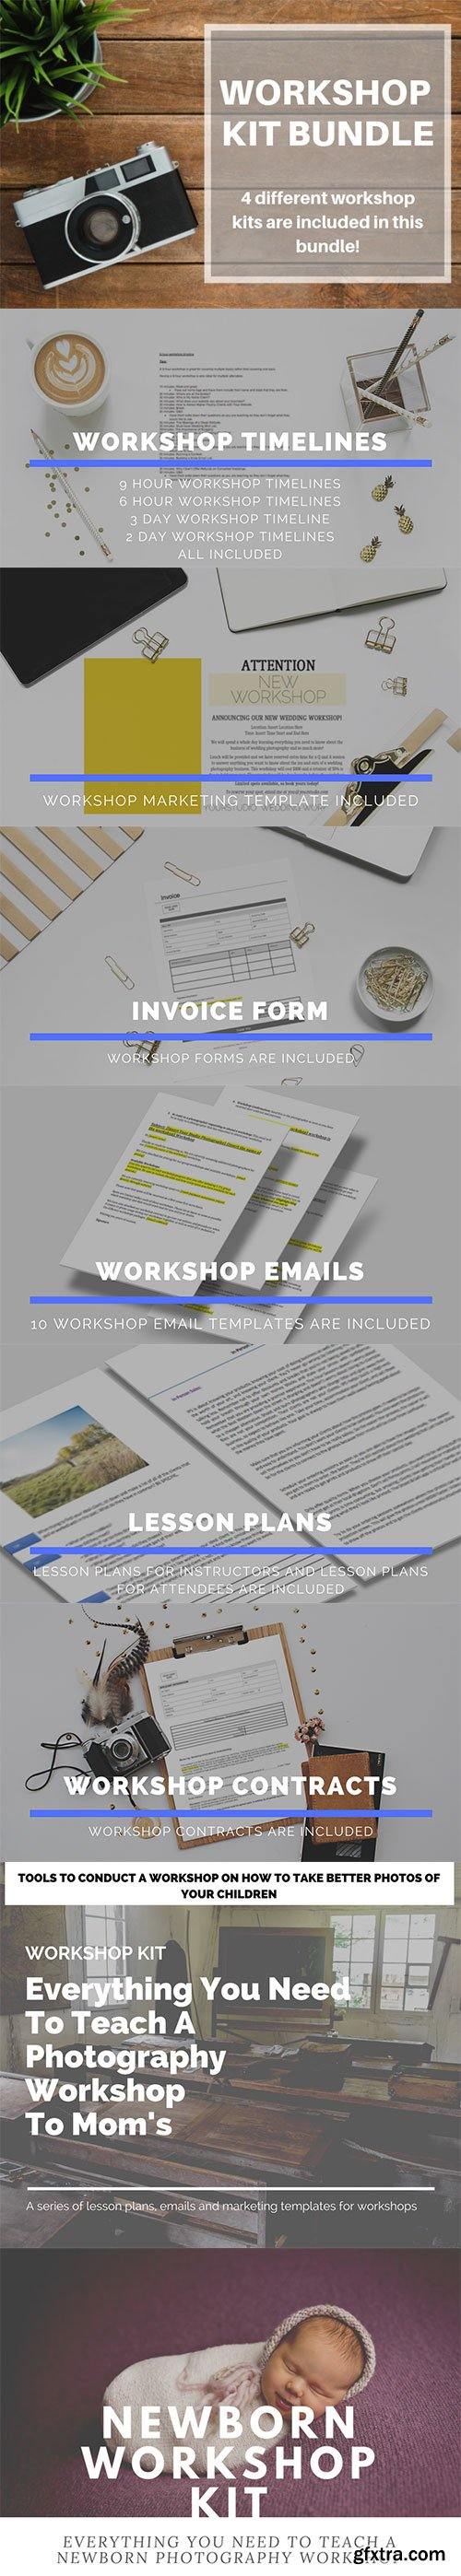 Workshop Kit Bundle | 4 Different Workshops - 1 Bundle!